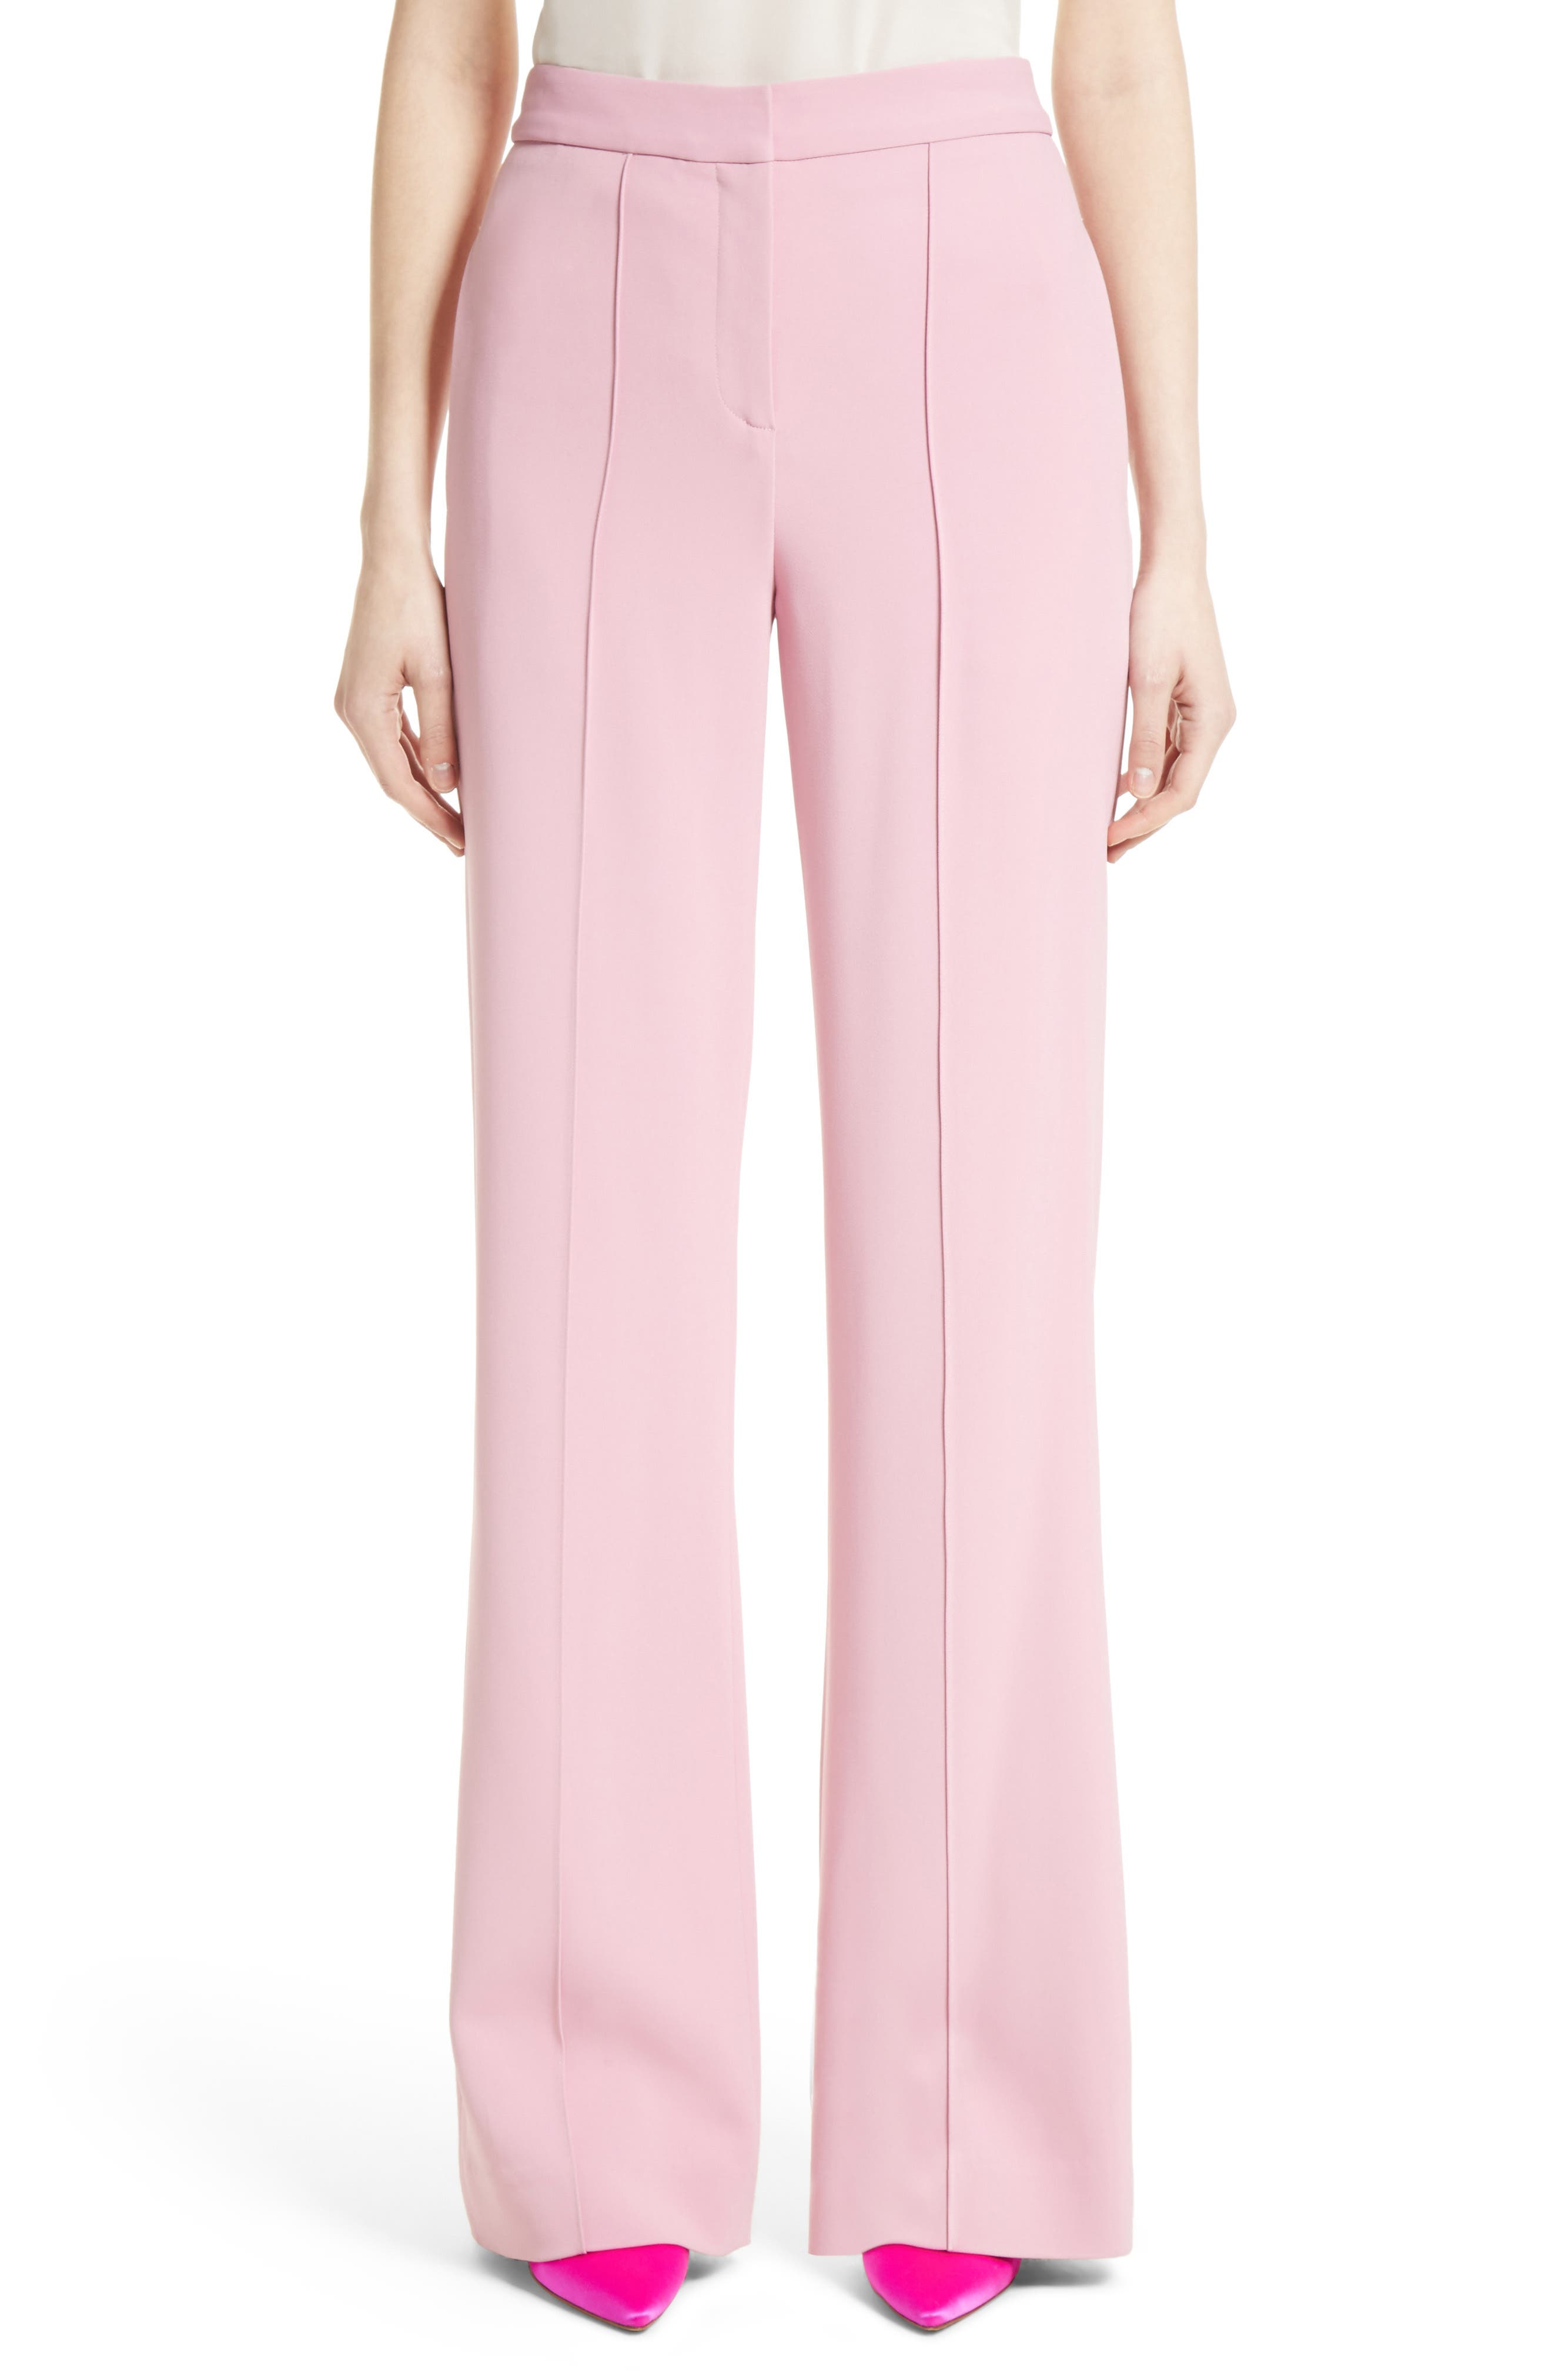 Alternate Image 1 Selected - Adam Lippes Stretch Cady Wide Leg Trousers